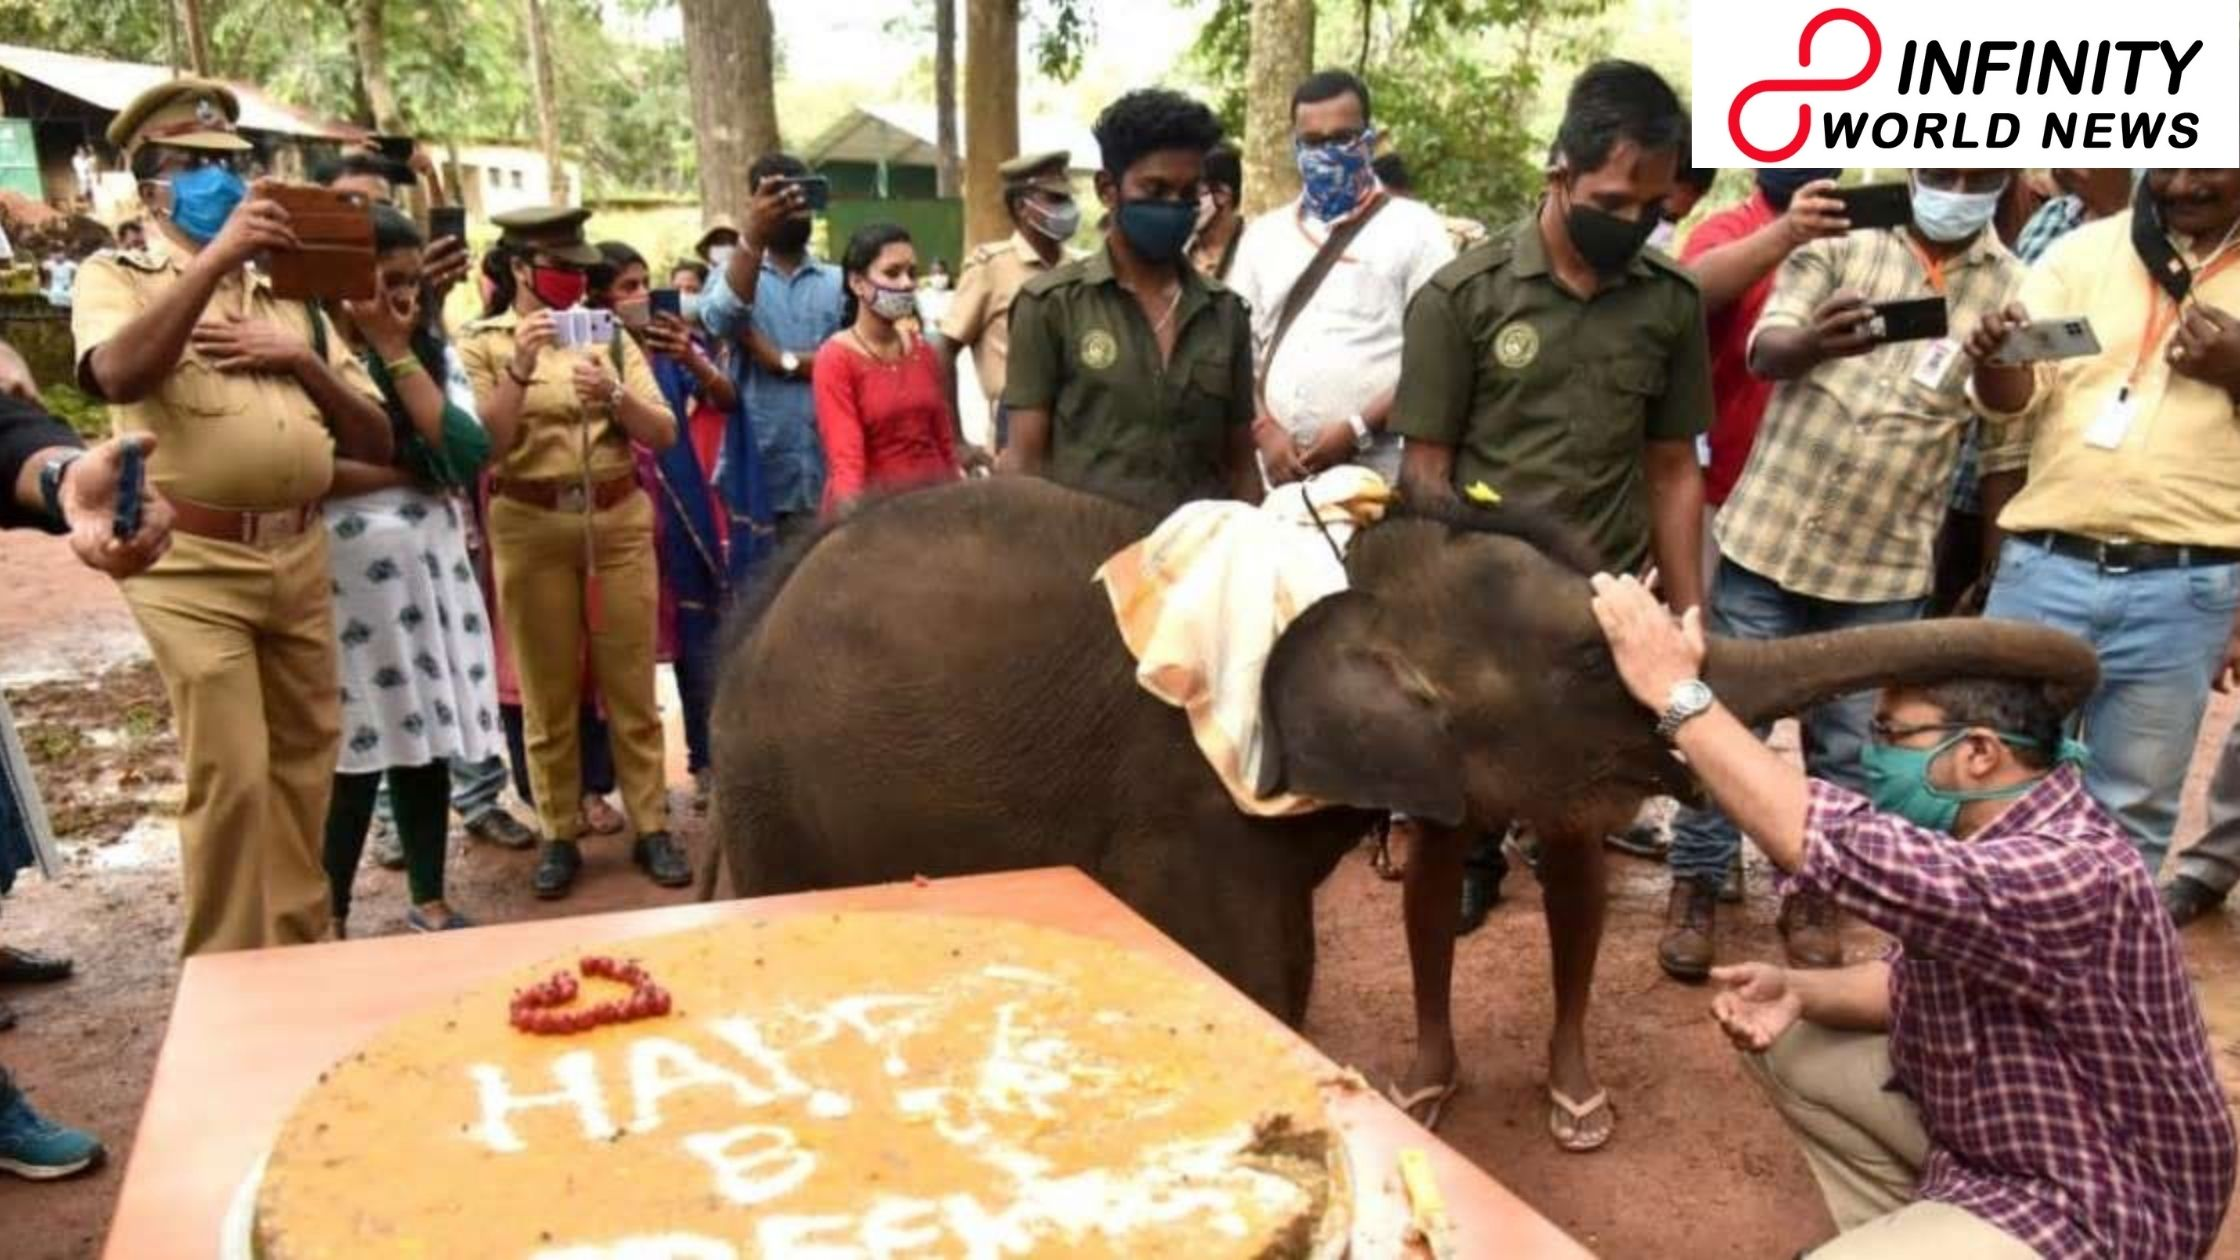 Little Elephant Gets Birthday Surprise with Sugarcane and Jaggery Cake in Kerala